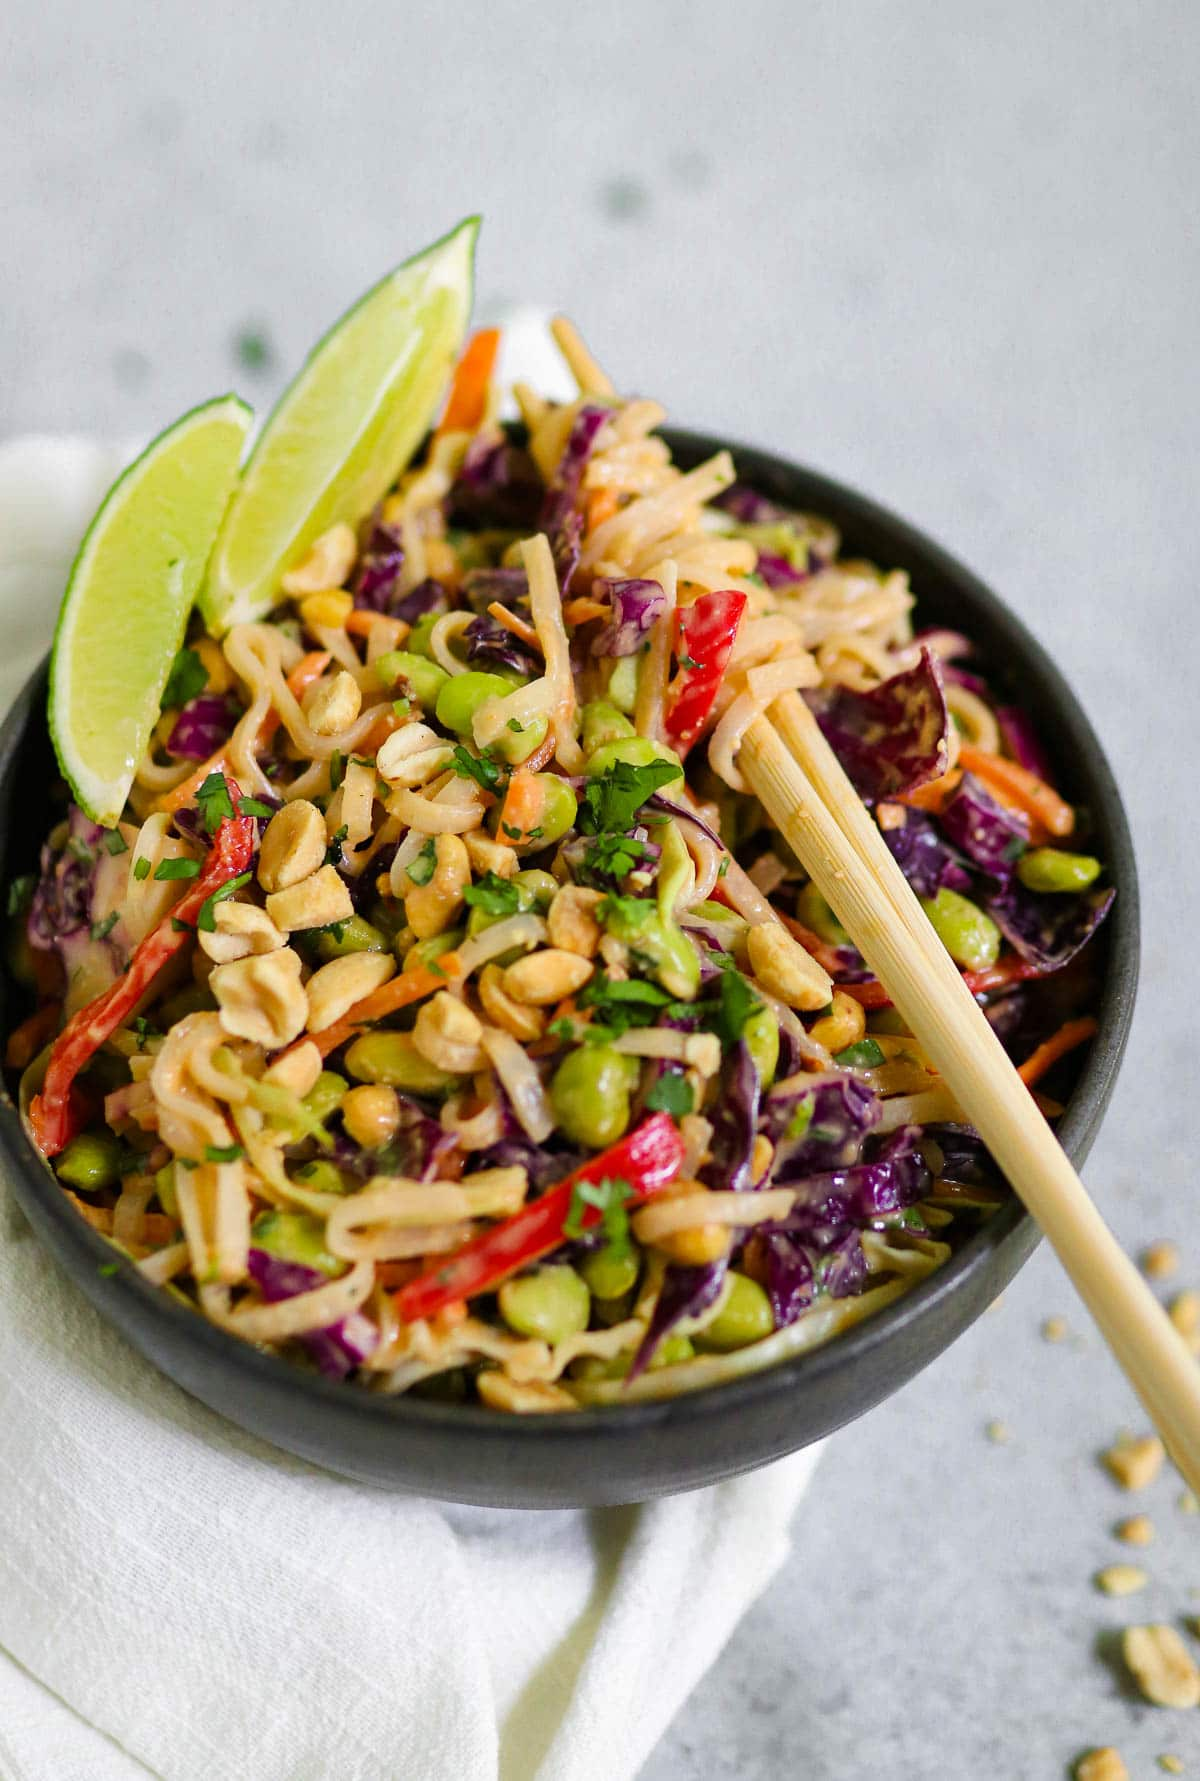 Photo of peanut noodle salad with chopsticks in the noodles in a black bowl